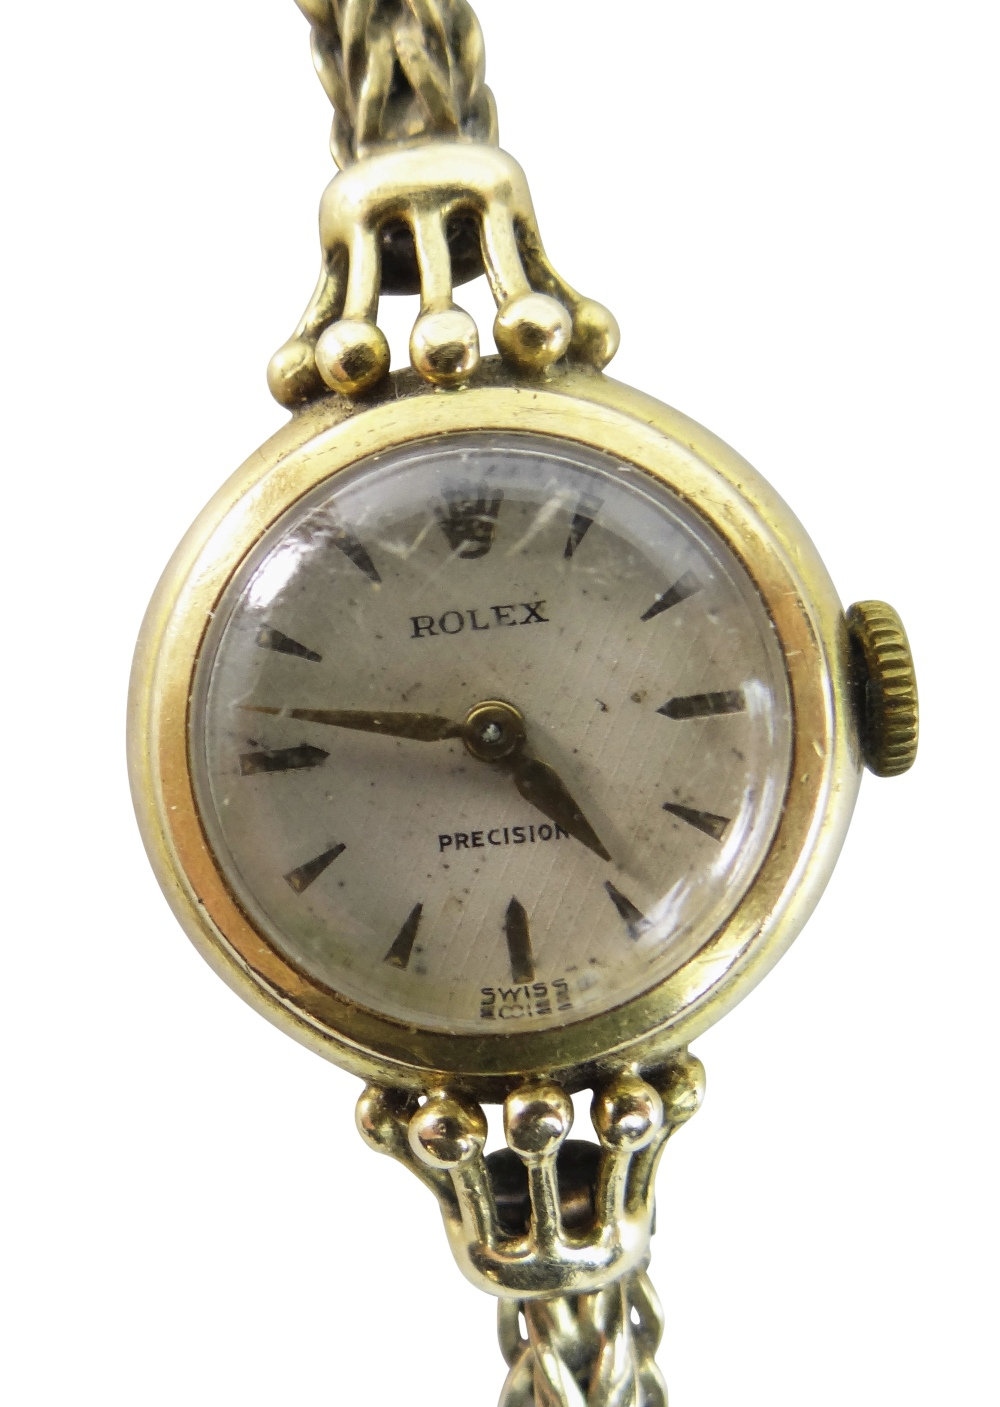 18CT YELLOW GOLD LADIES ROLEX PRECISION WRISTWATCH, the inside cover marked 'R. W. Co Ltd' and